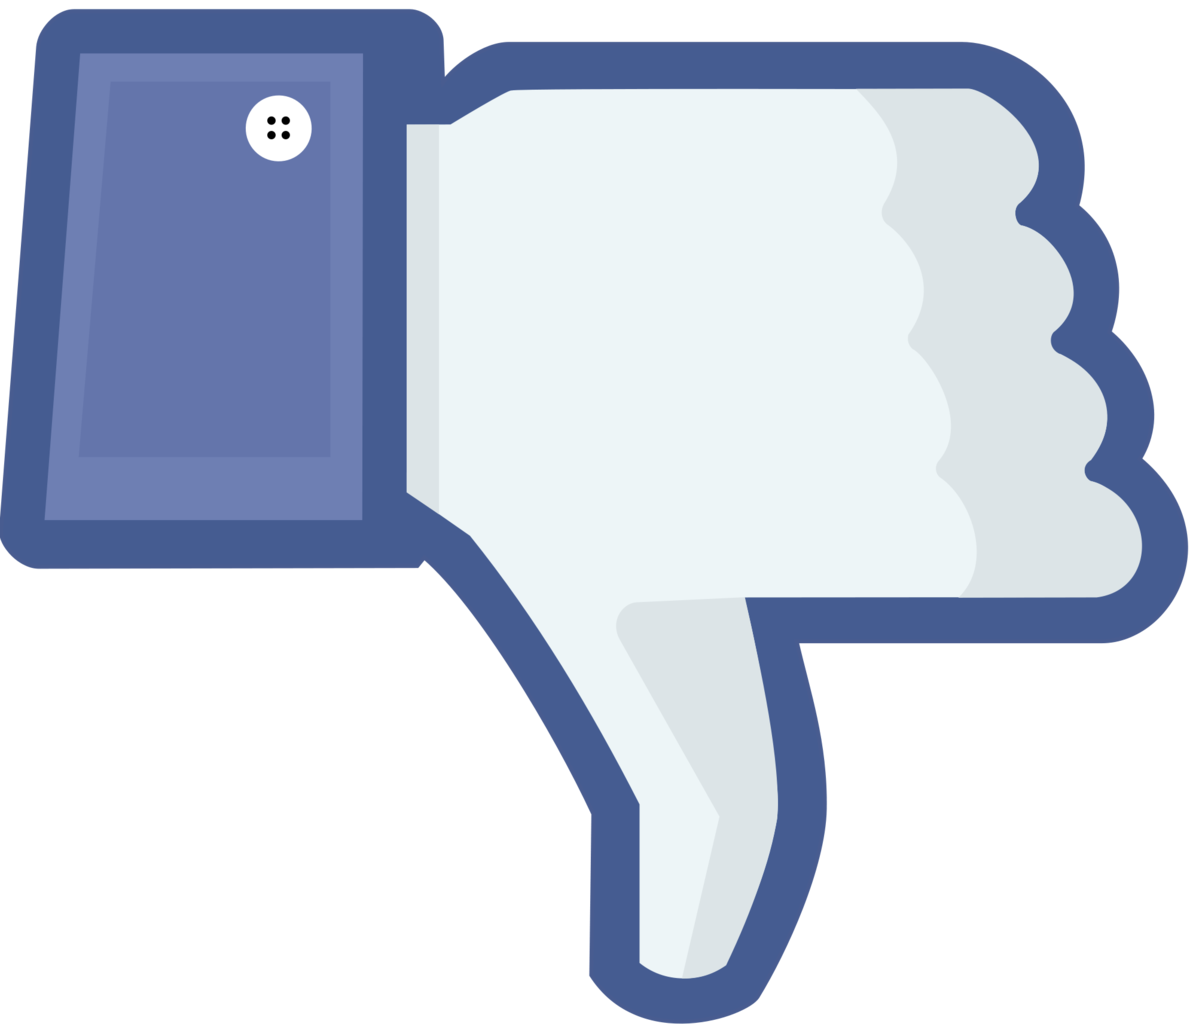 Facebook Dislike Transparent image #38366